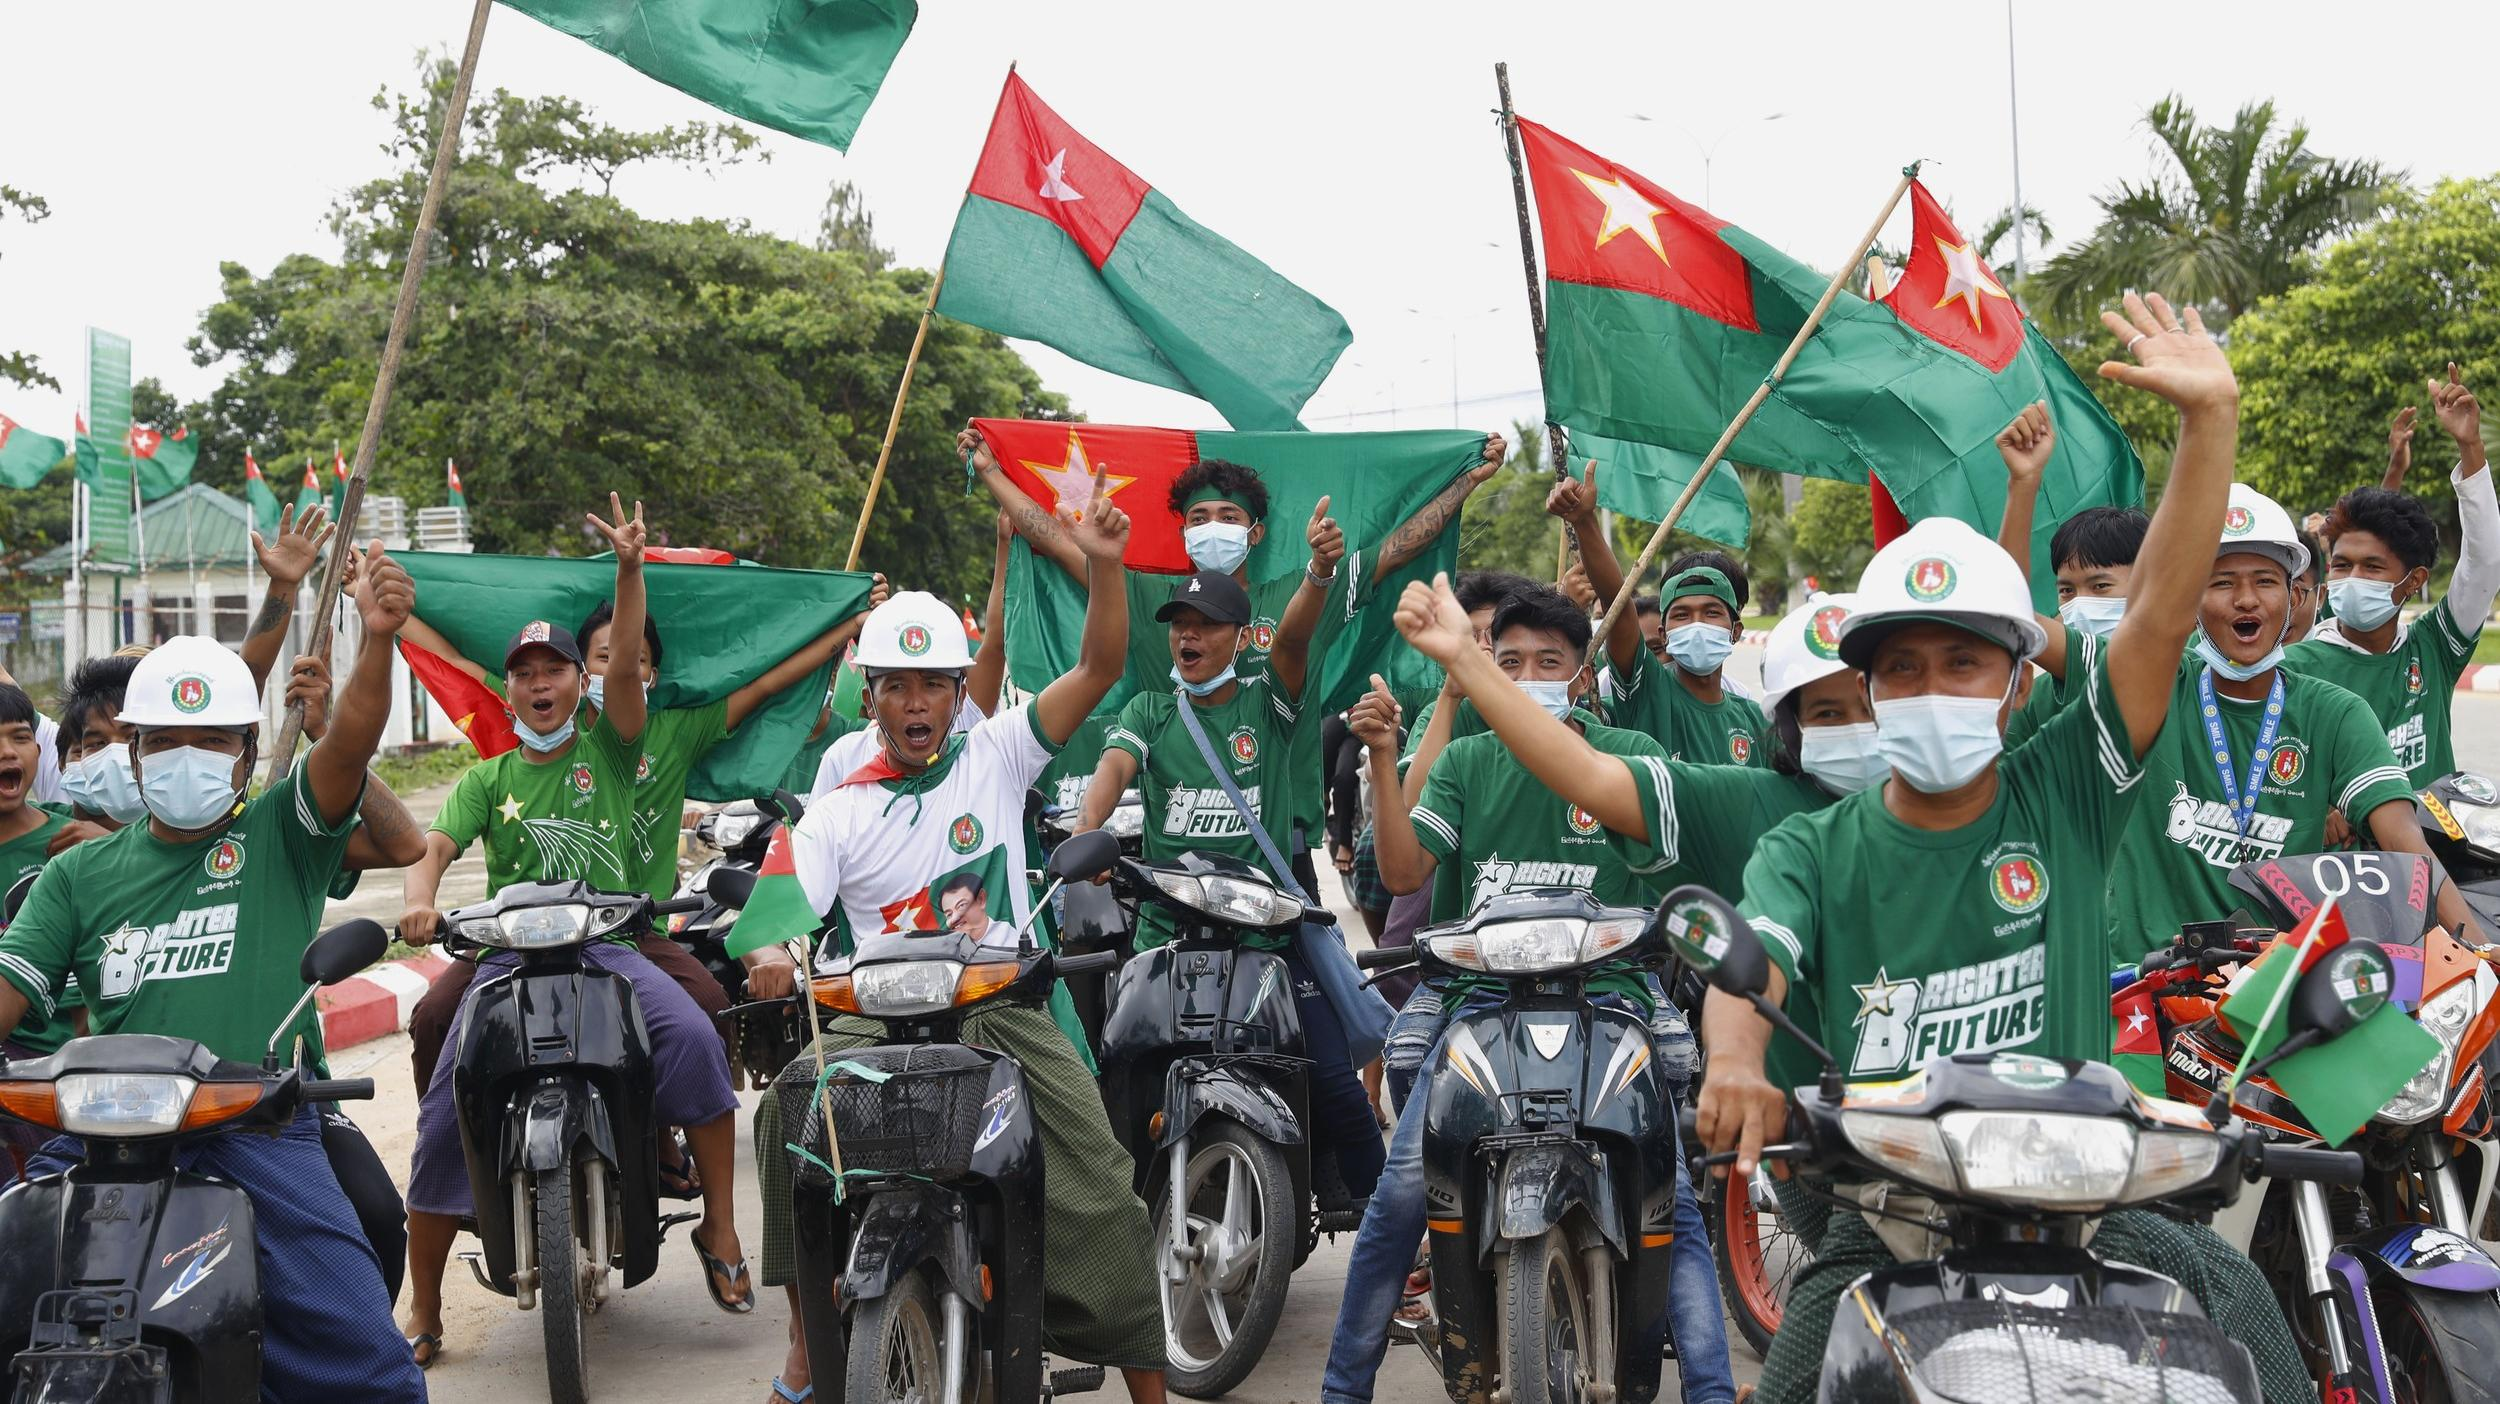 Myanmar Election Crowds Defy Coronavirus Restrictions at Campaign Events